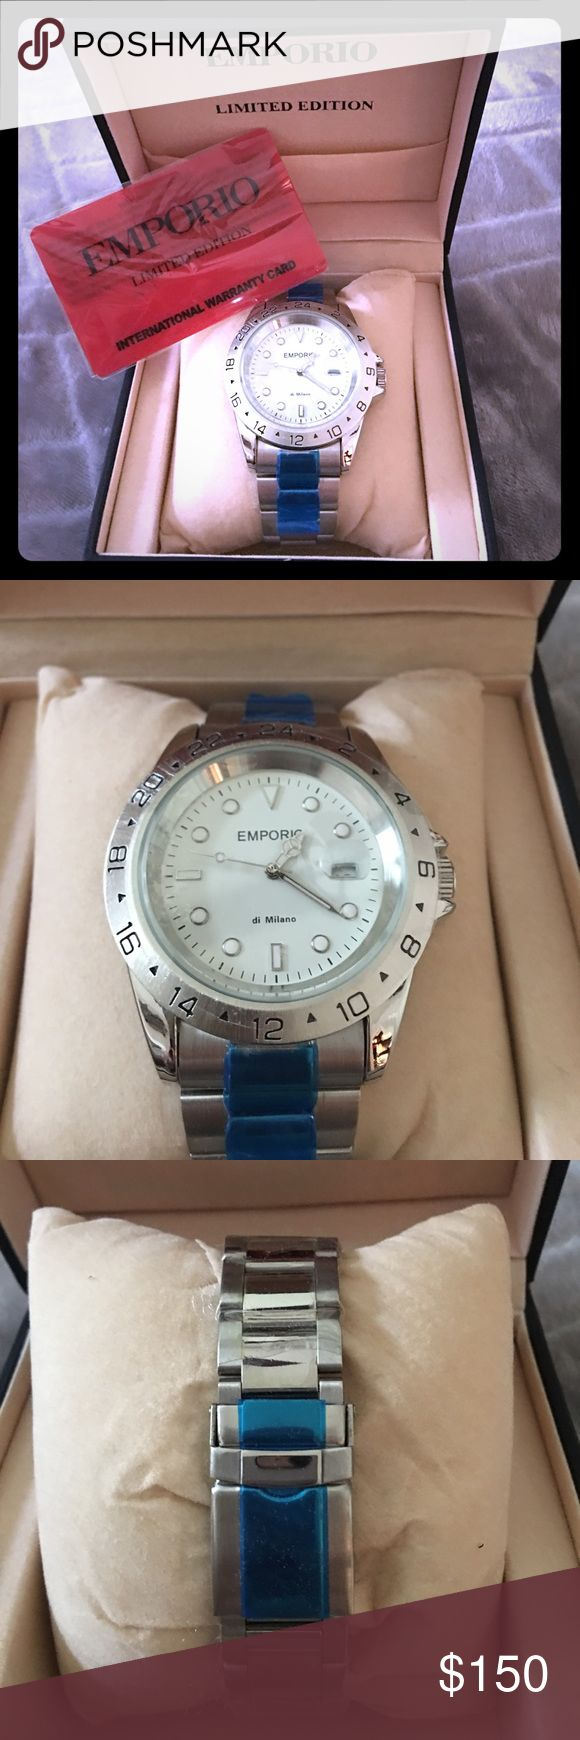 Armani Emporio Limited Edition Watch Limited Edition Men's Armani Emporio Silver  Watch Brand New in box never used. Emporio Armani Accessories Watches